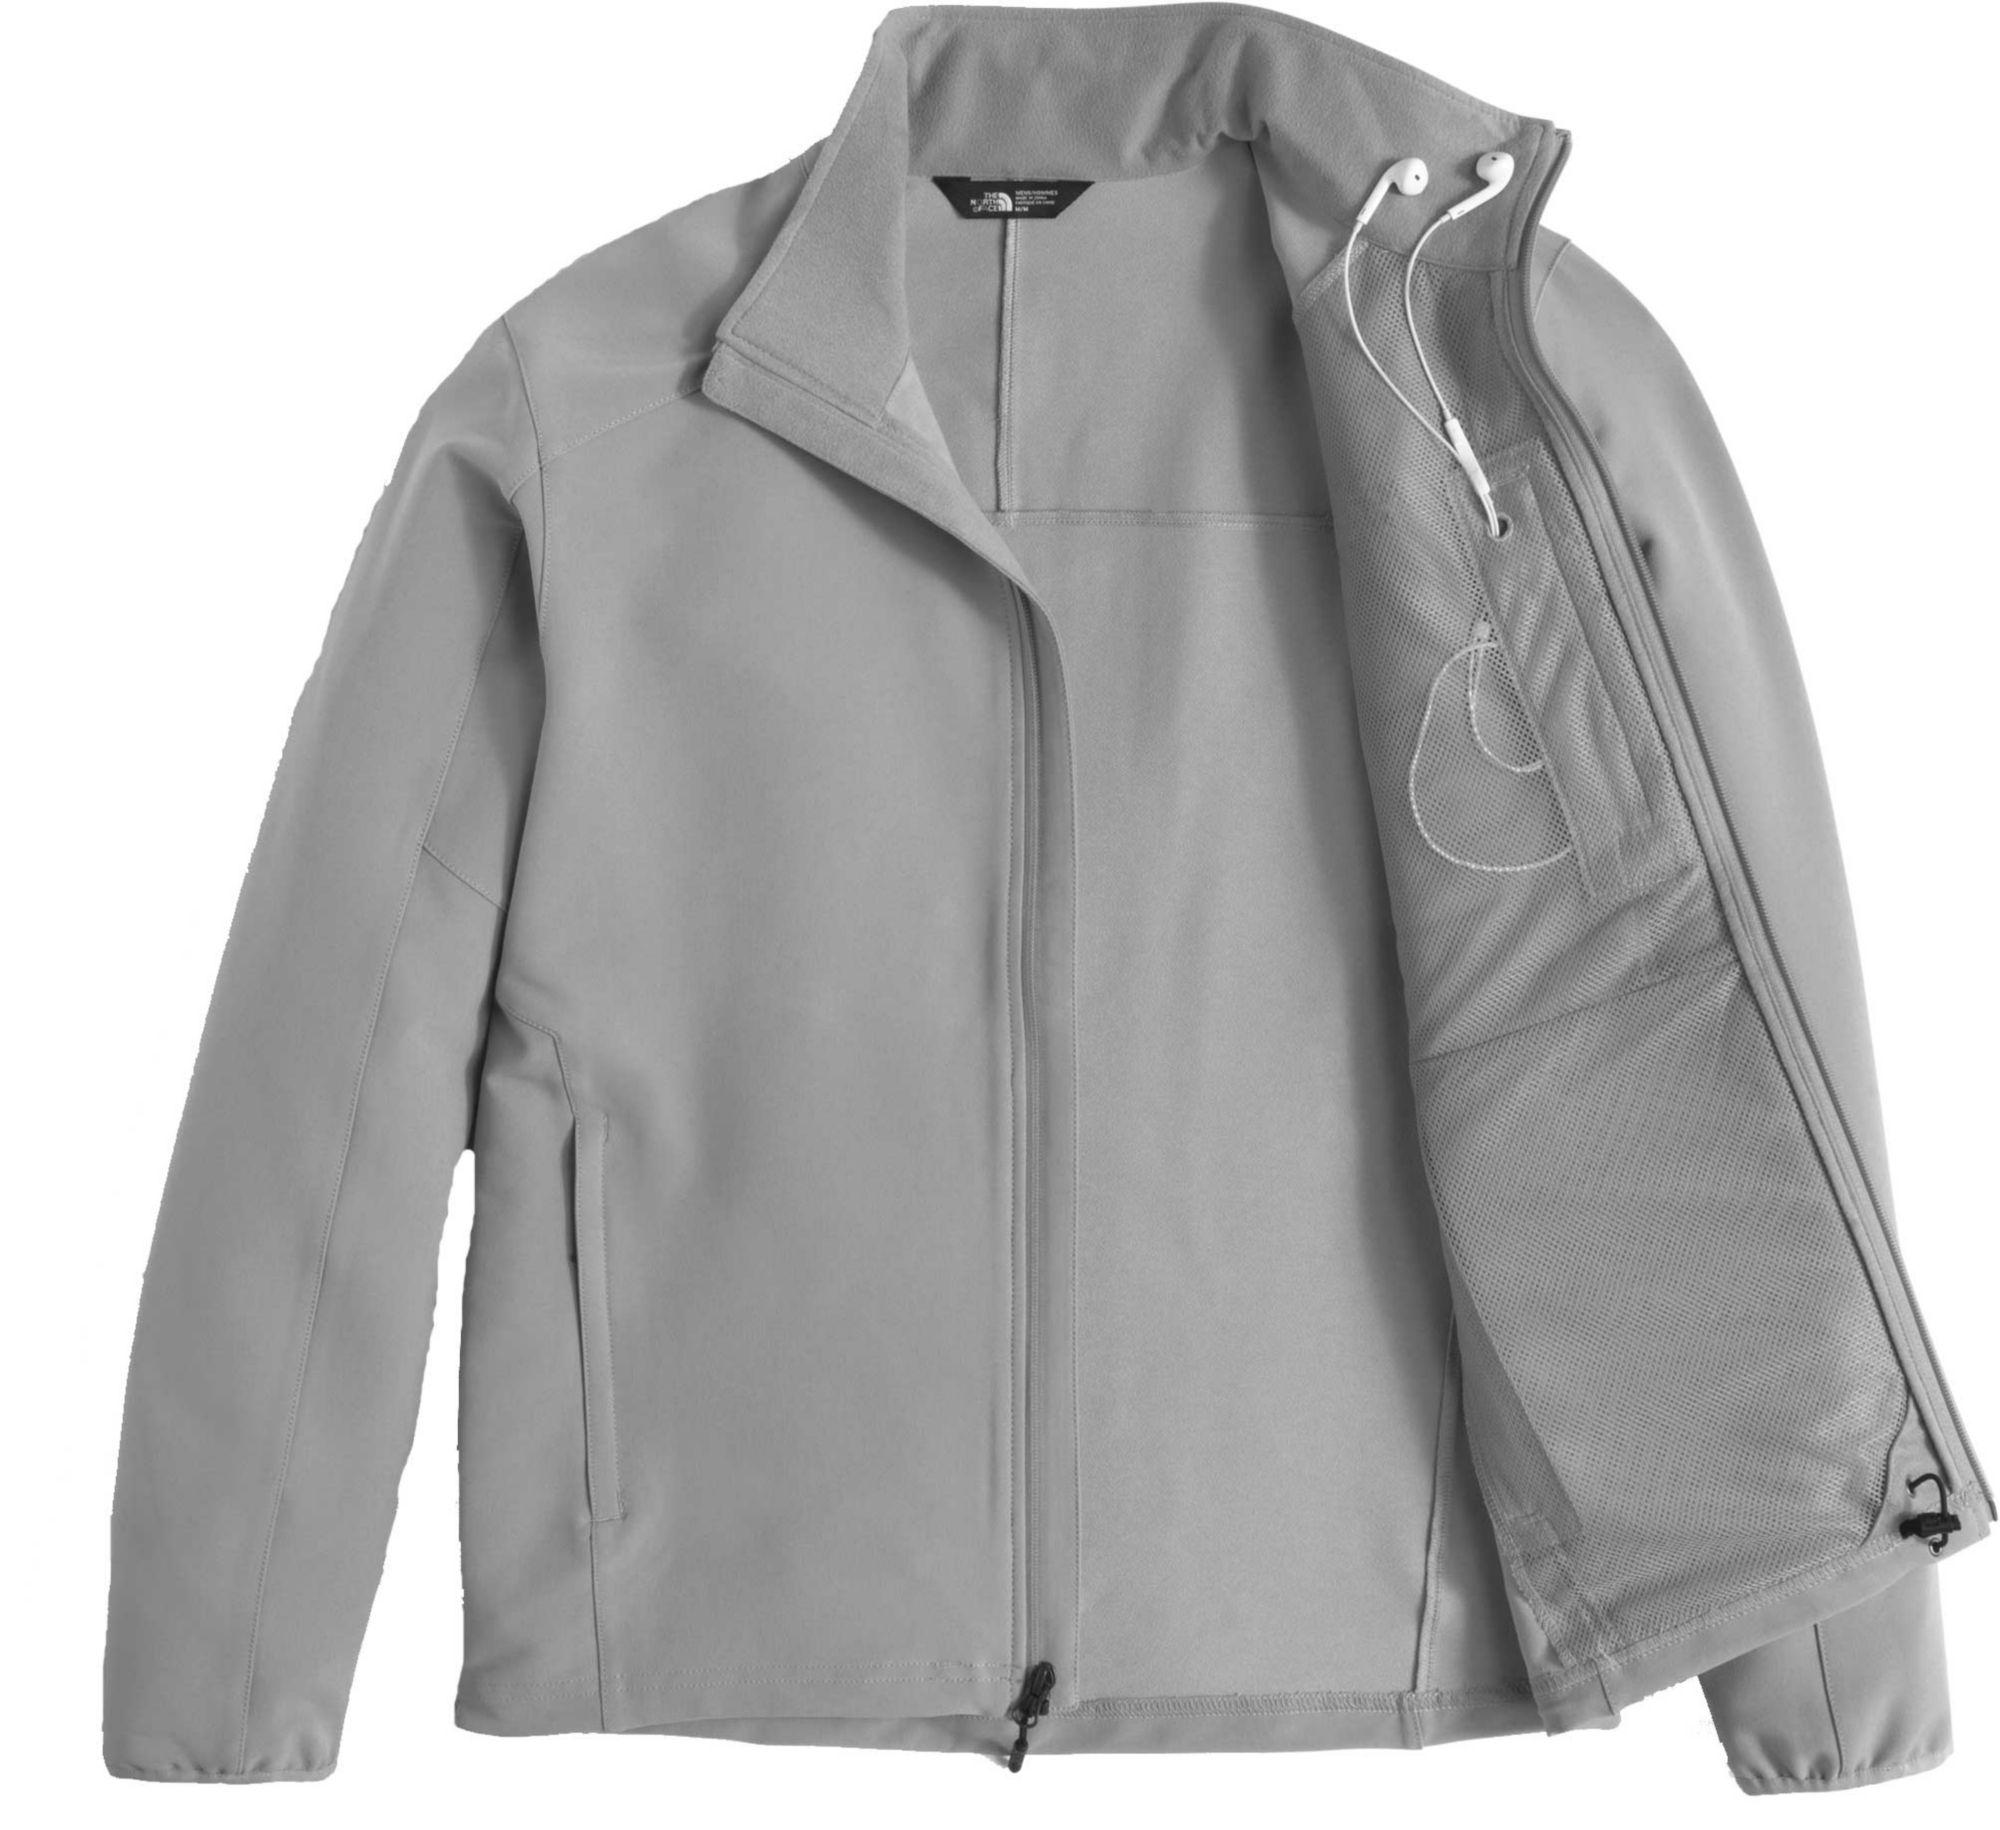 7b3722c35 The North Face Gray Apex Pneumatic Soft Shell Jacket for men